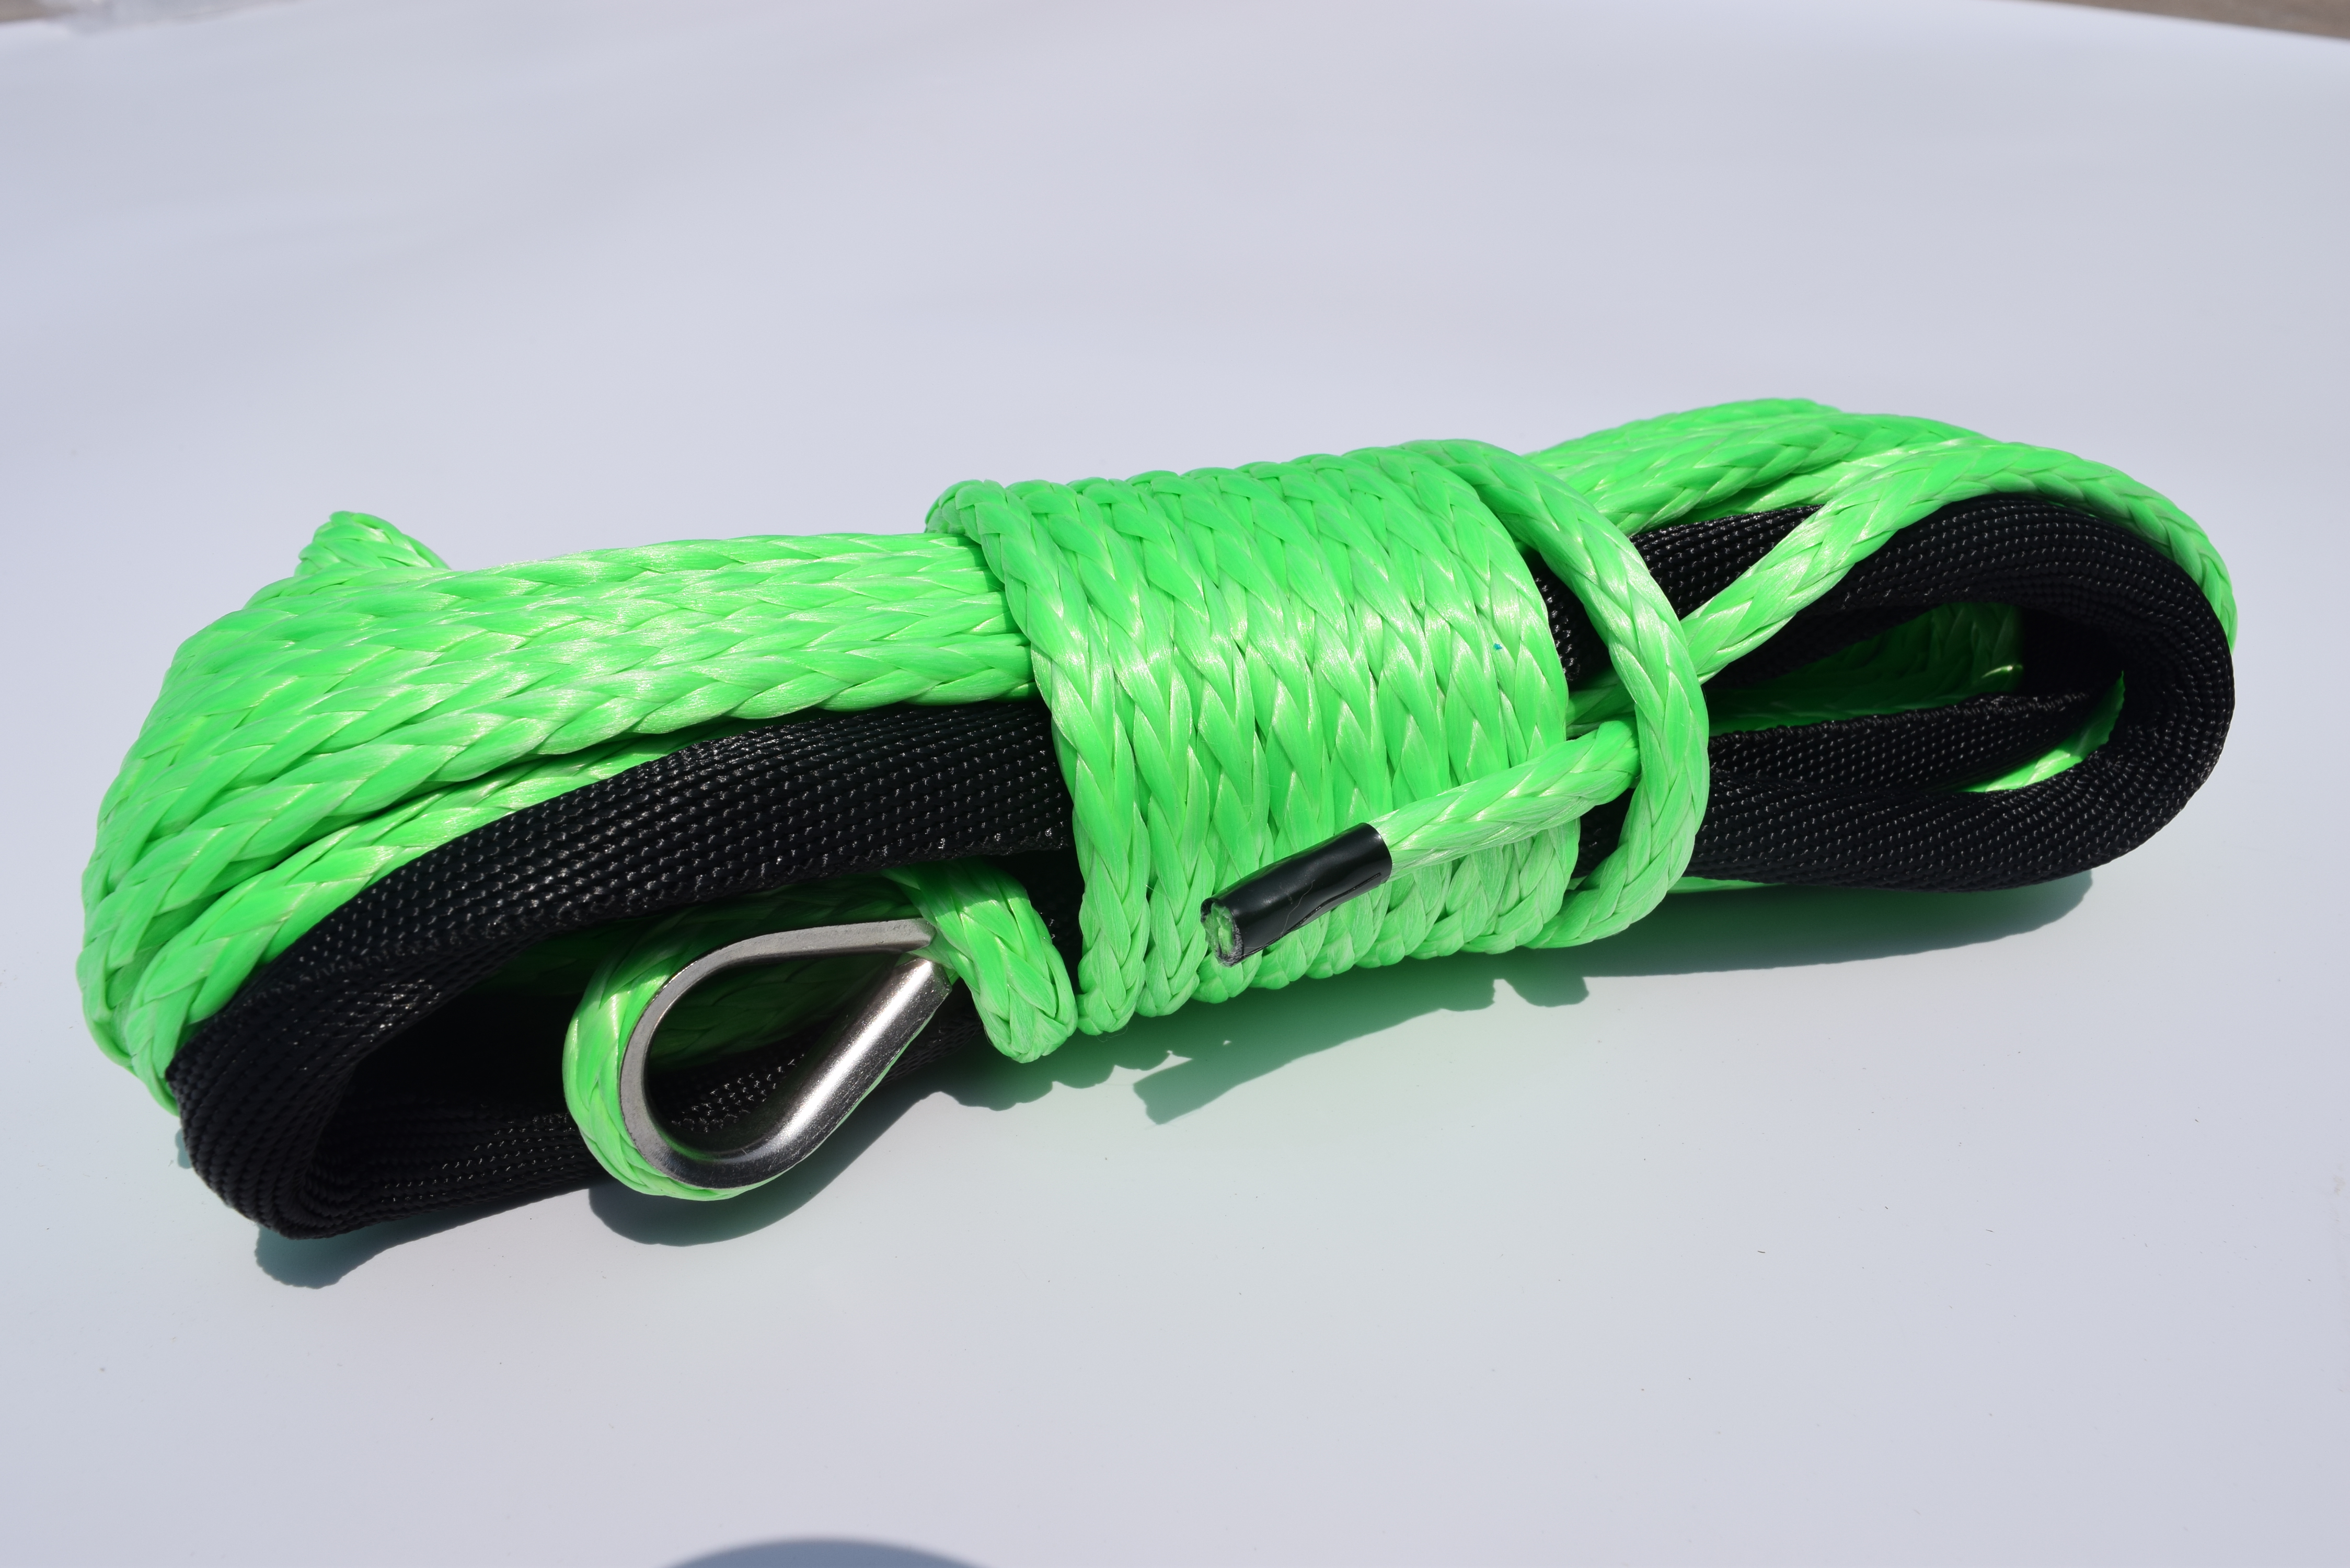 Green 6mm*15m Synthetic Rope,ATV Winch Line,Kevlar Winch Rope 6mm,ATV Winch Accessaries,Plasma Rope